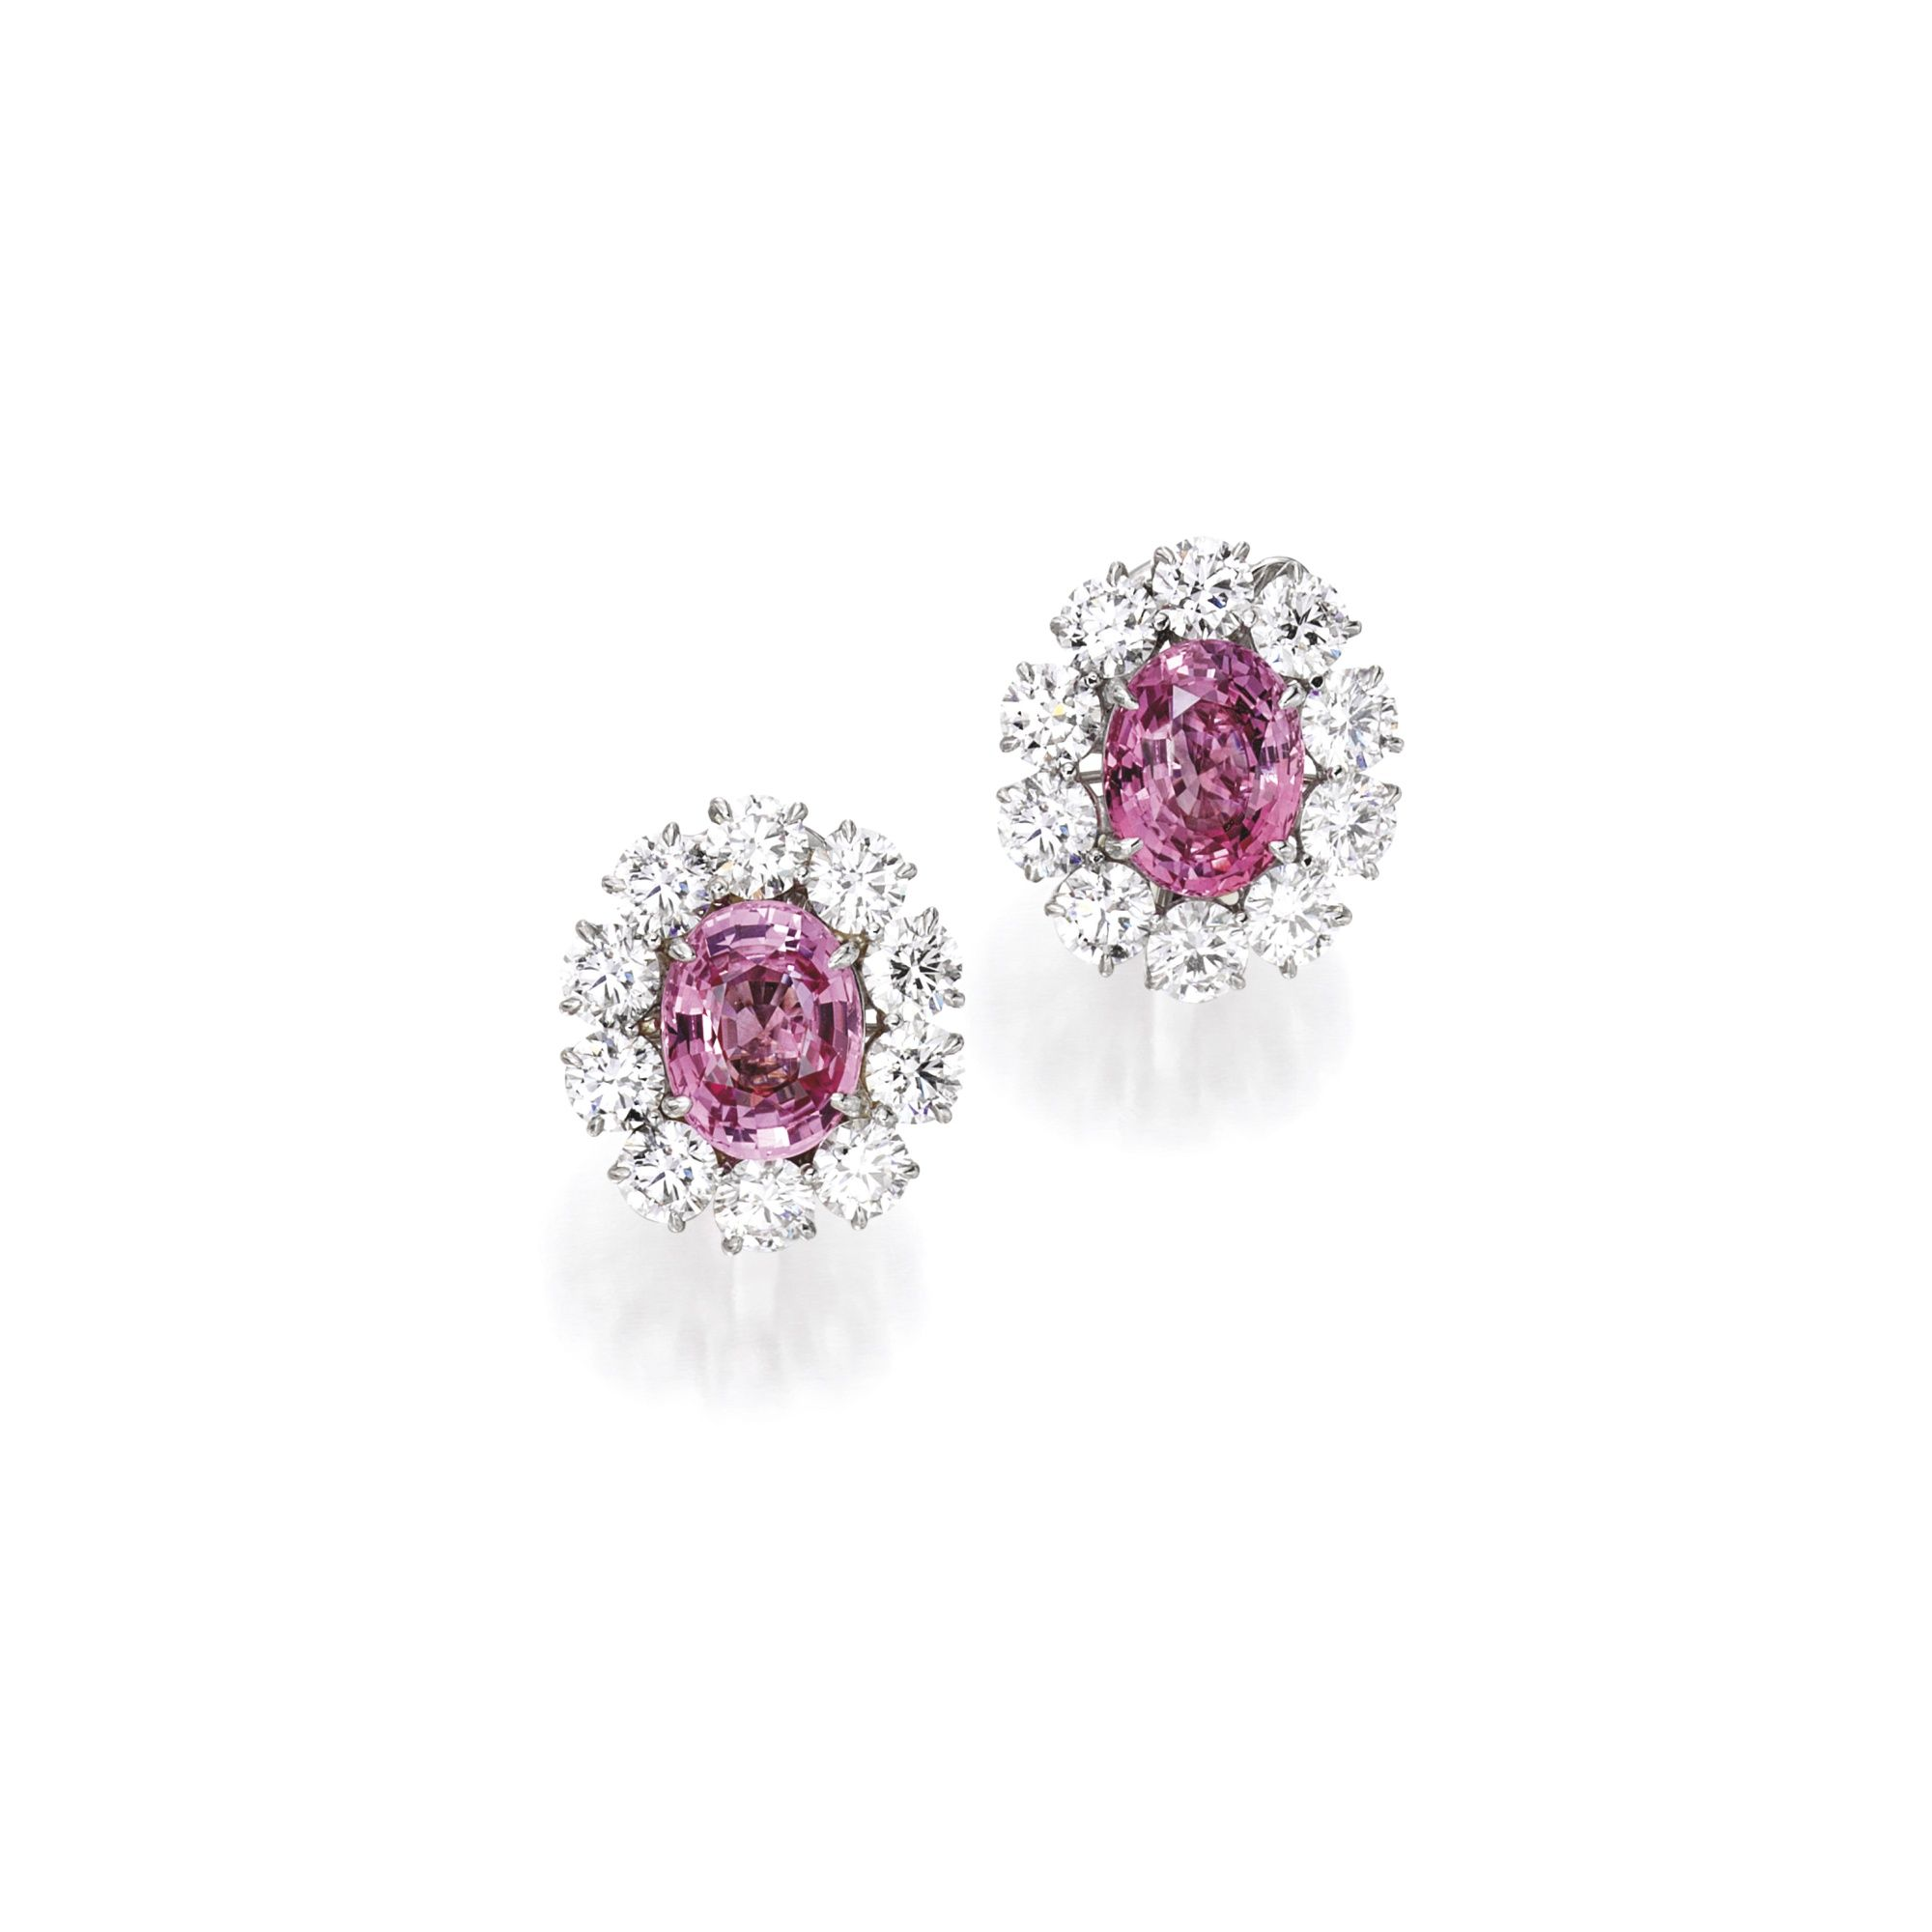 dia padparadscha plat sapphire sapp jupitergem ring in diamonds with natural carats platinum heated set earrings diamond